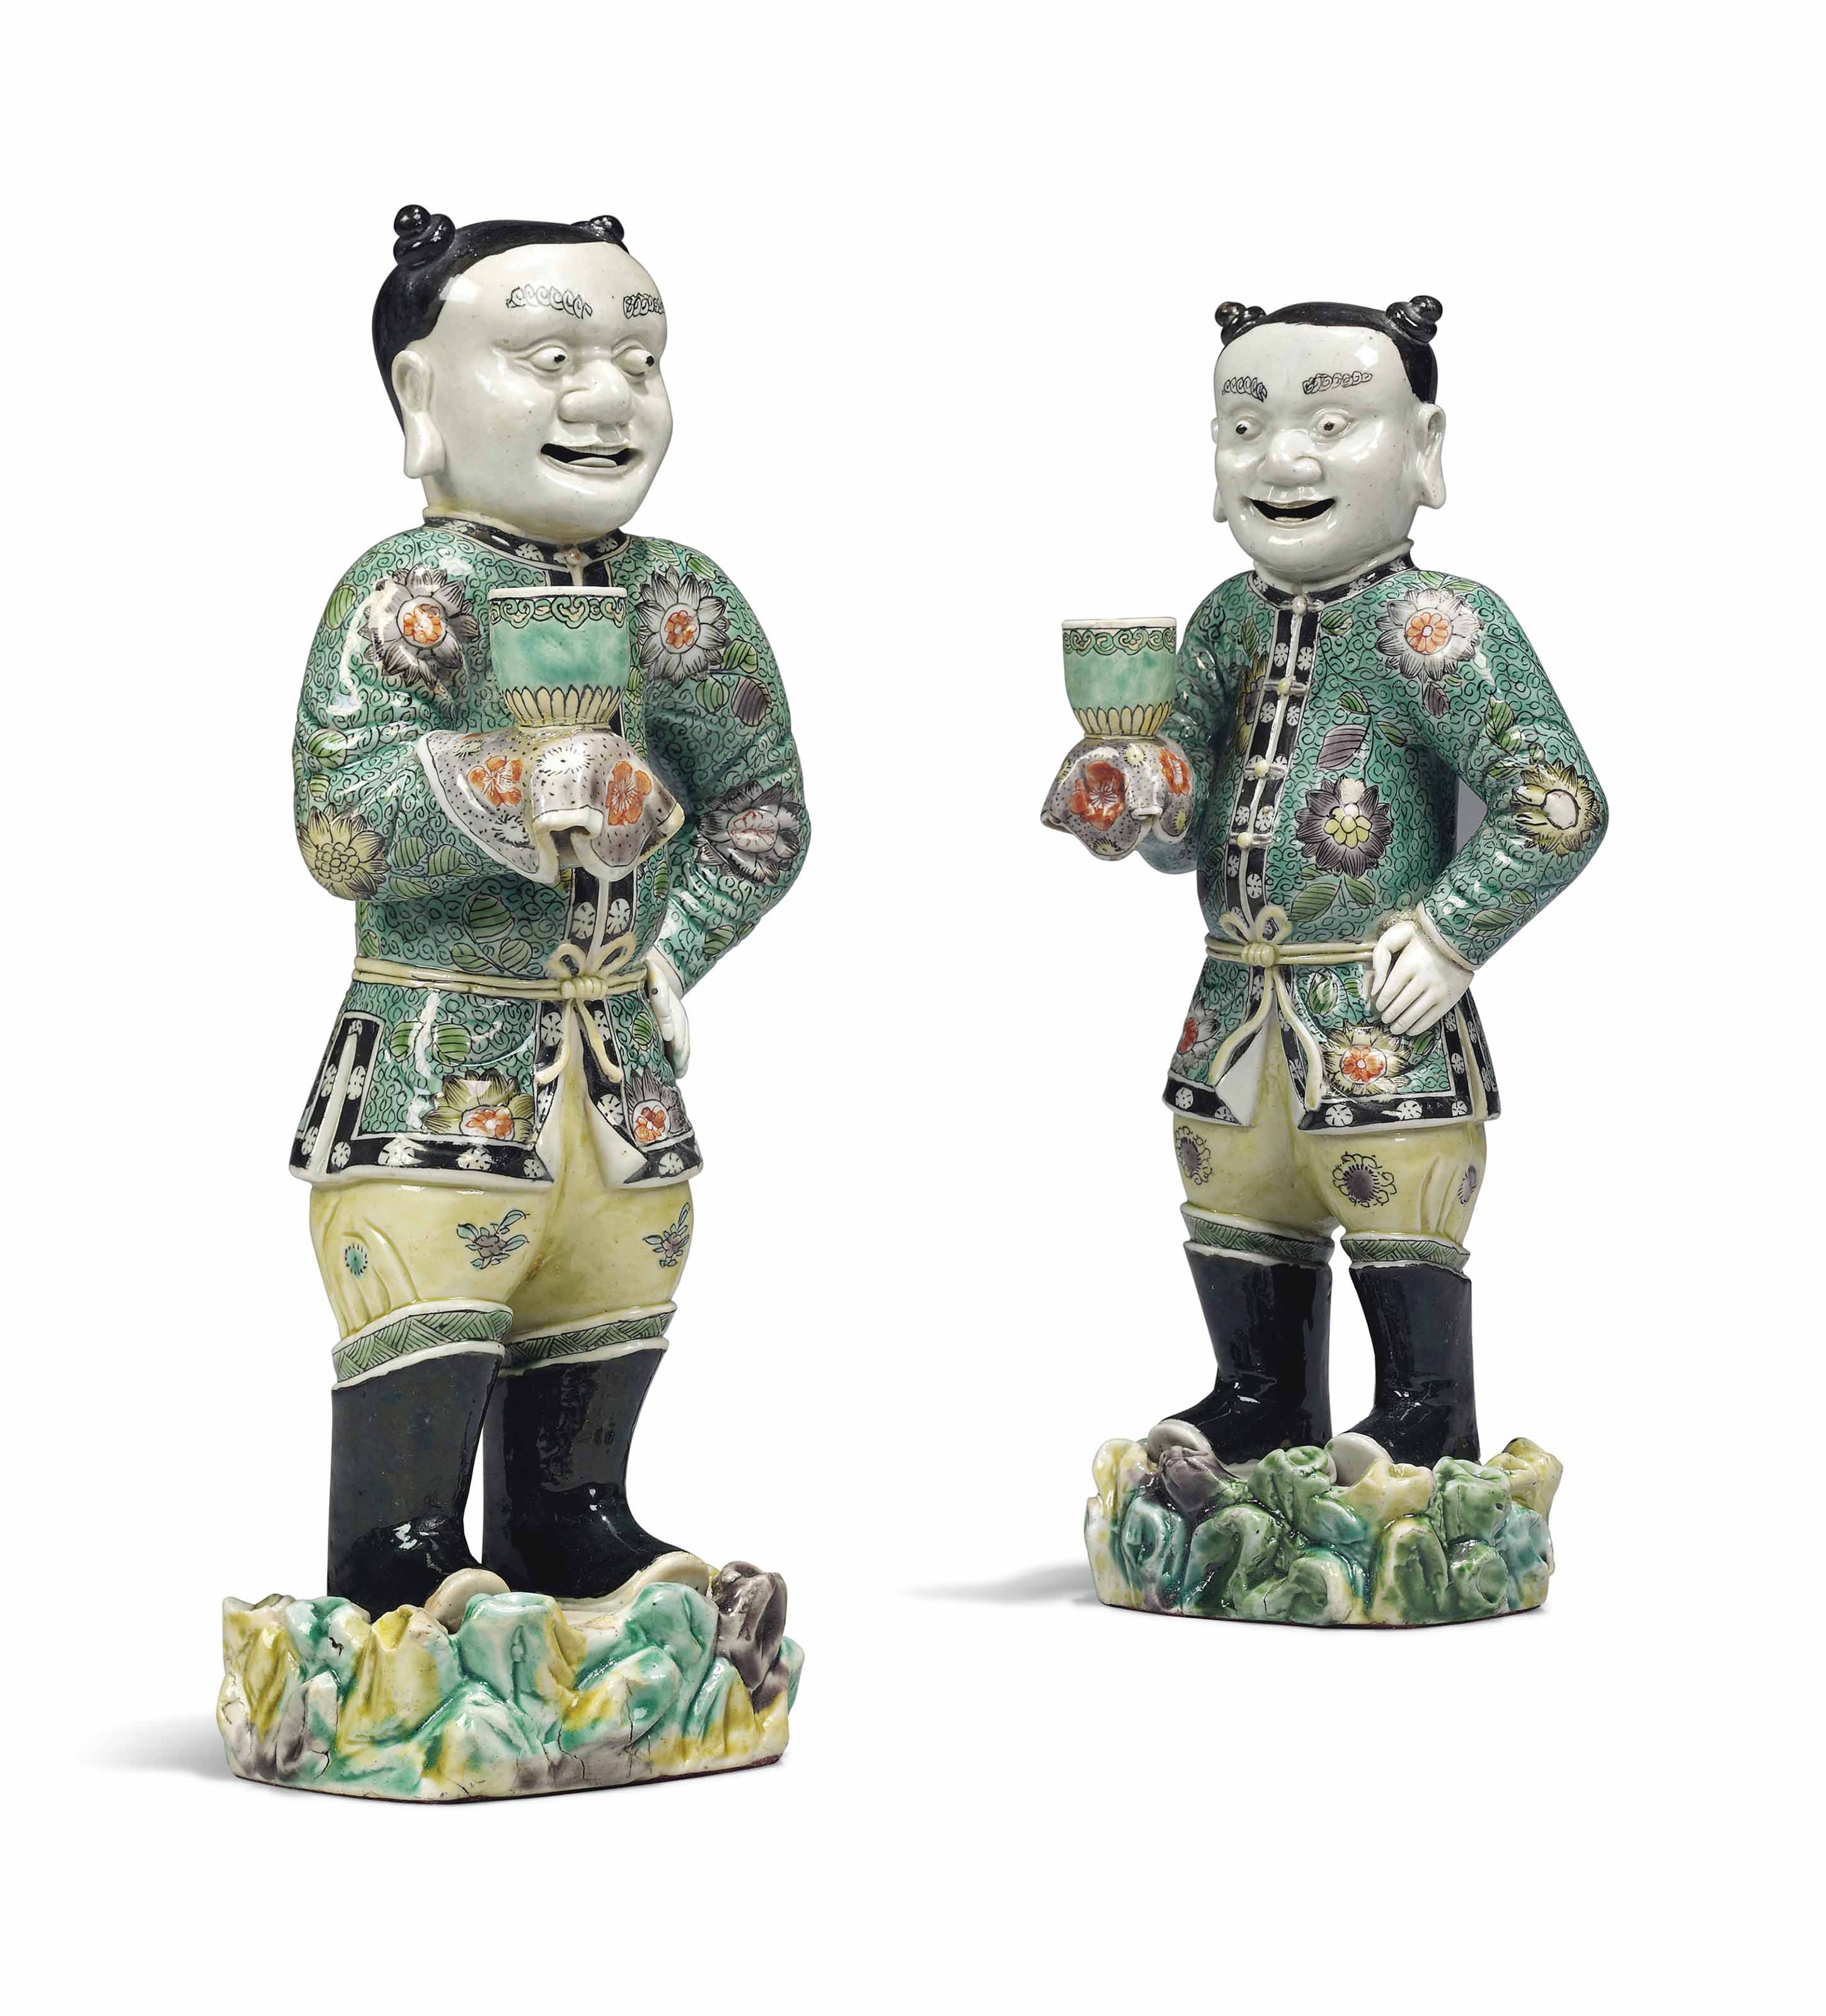 A PAIR OF RARE CHINESE FAMILLE VERTE BISCUIT FIGURES OF 'BOY...